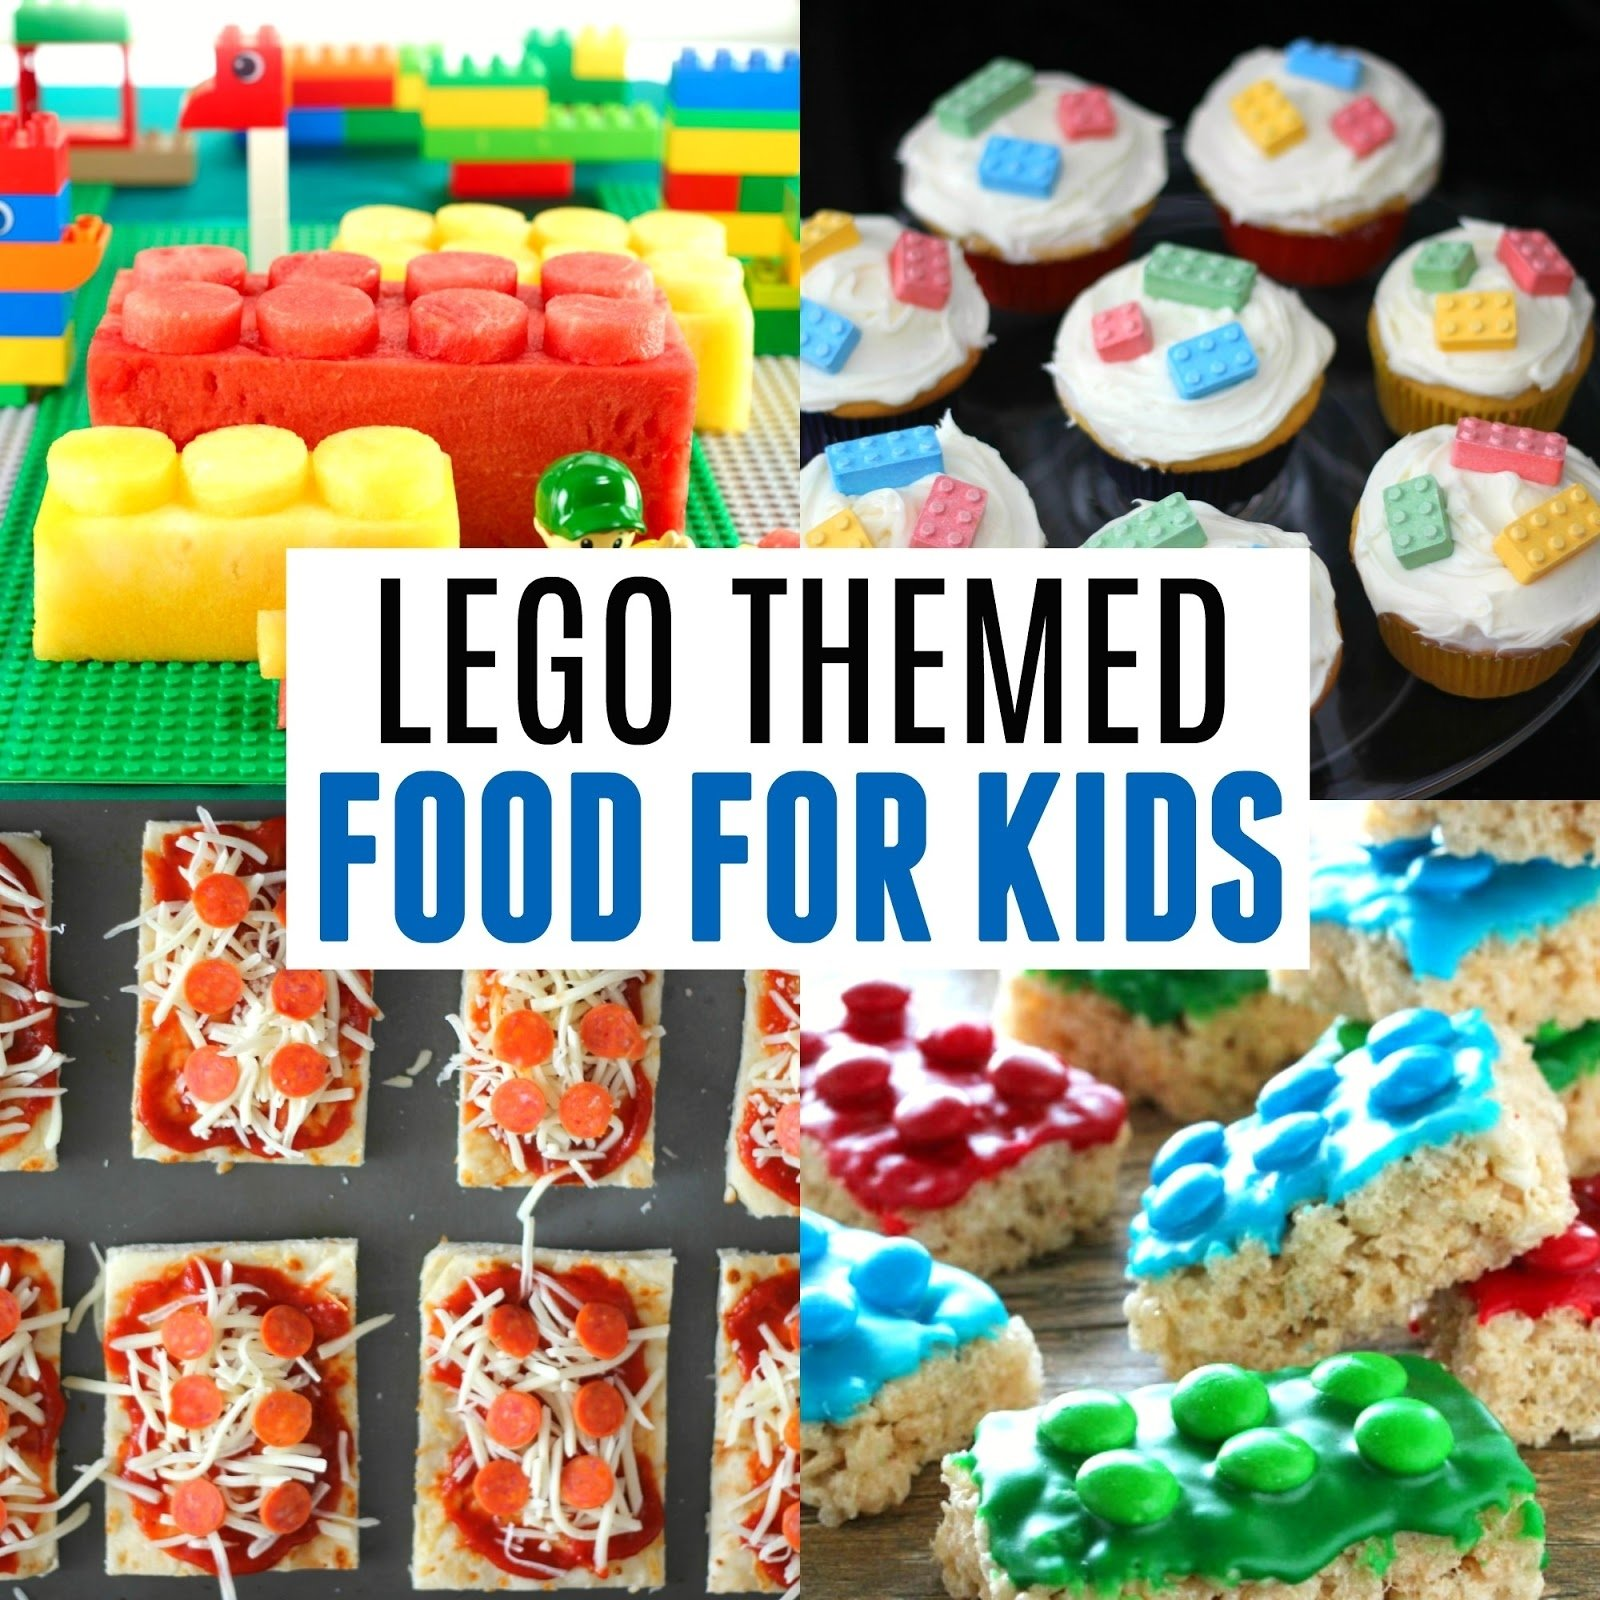 10 Nice Lego Birthday Party Food Ideas toddler approved easy lego brick themed food for kids 2021